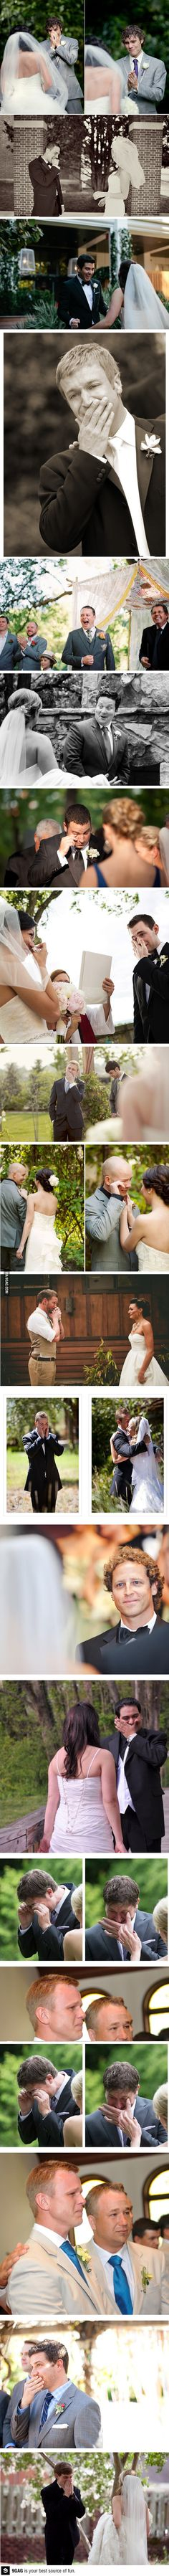 The groom sees his darling in a wedding dress for the first time...literally crying with this one